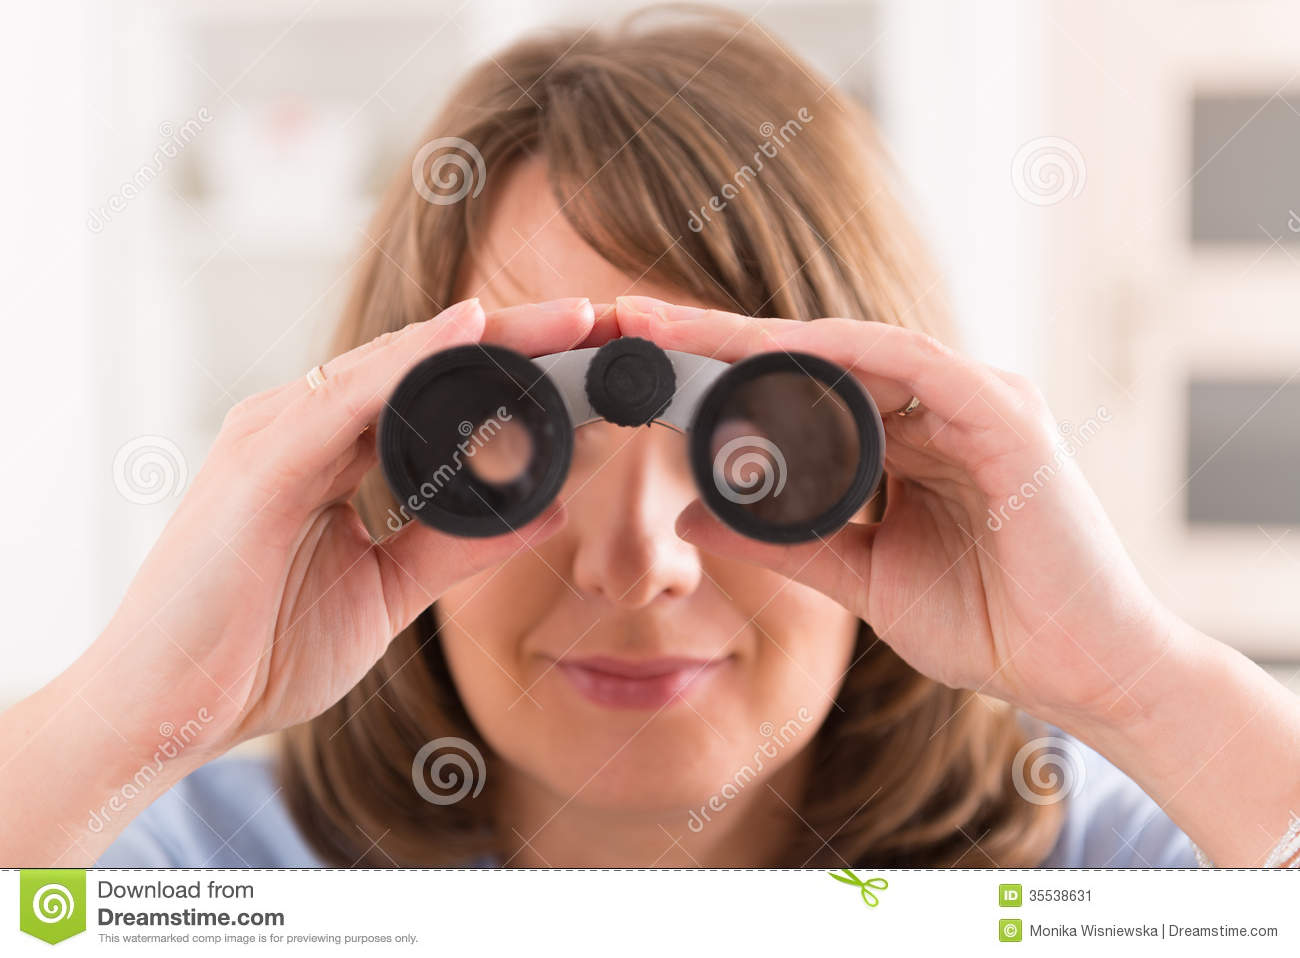 Woman Looking Through Binocular Stock Image - Image: 35538631